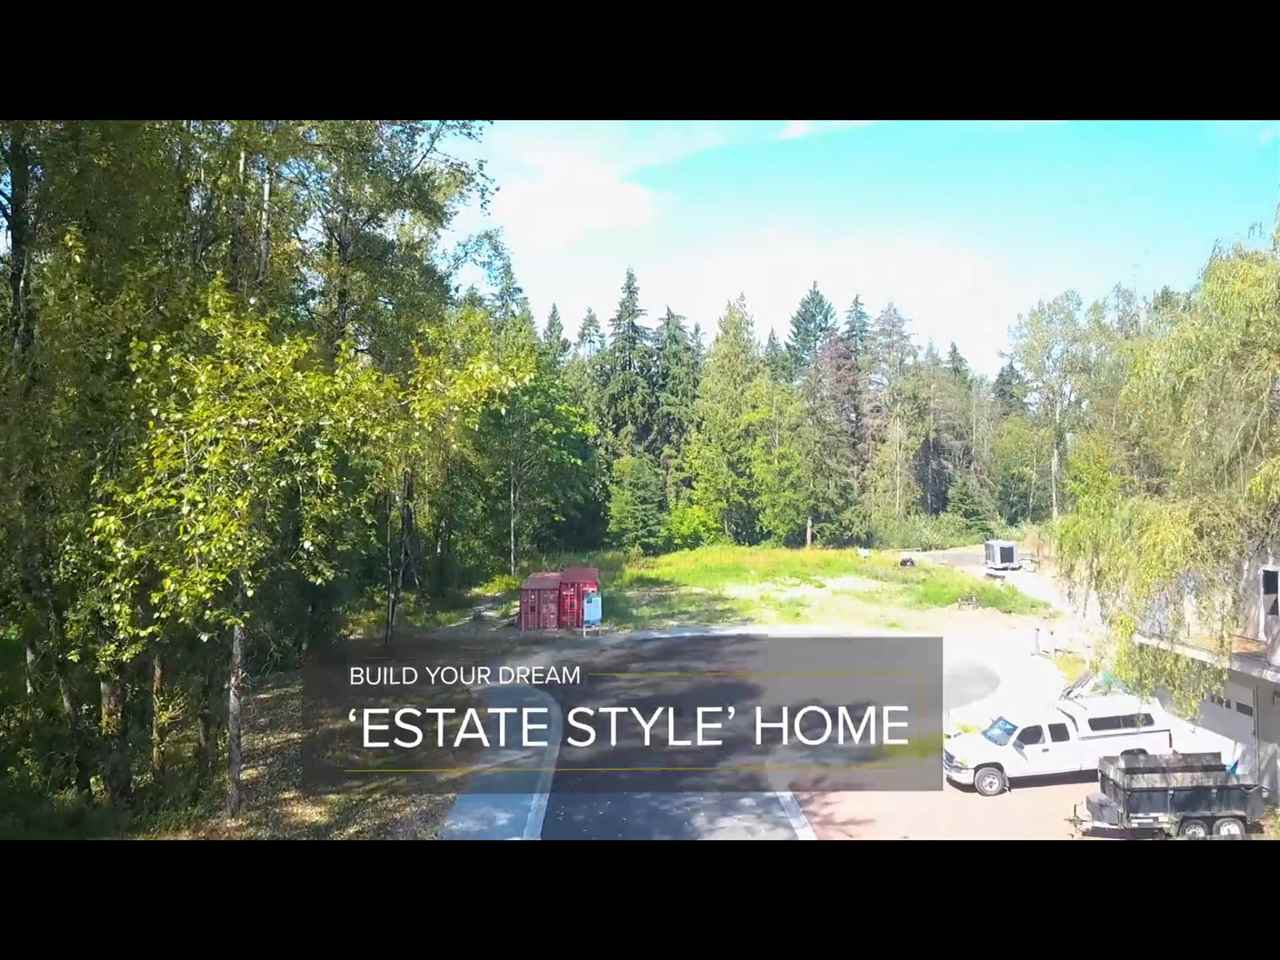 Main Photo: 7457 228 Street in Langley: Salmon River Land for sale : MLS®# R2215780